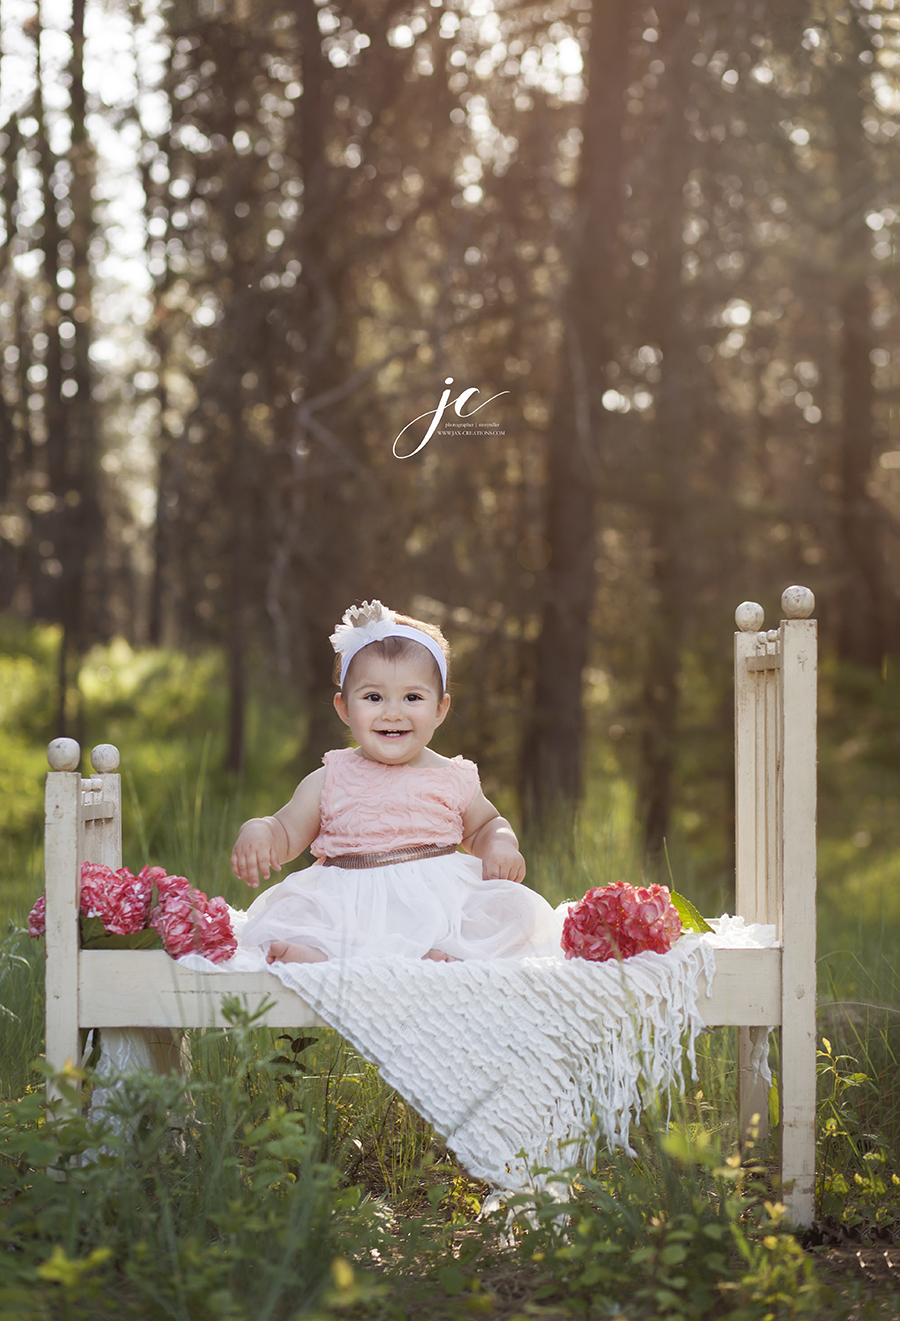 Jax Creations Photography, child photographer, baby, first birthday, coeur d'alene idaho photographer, cake smash